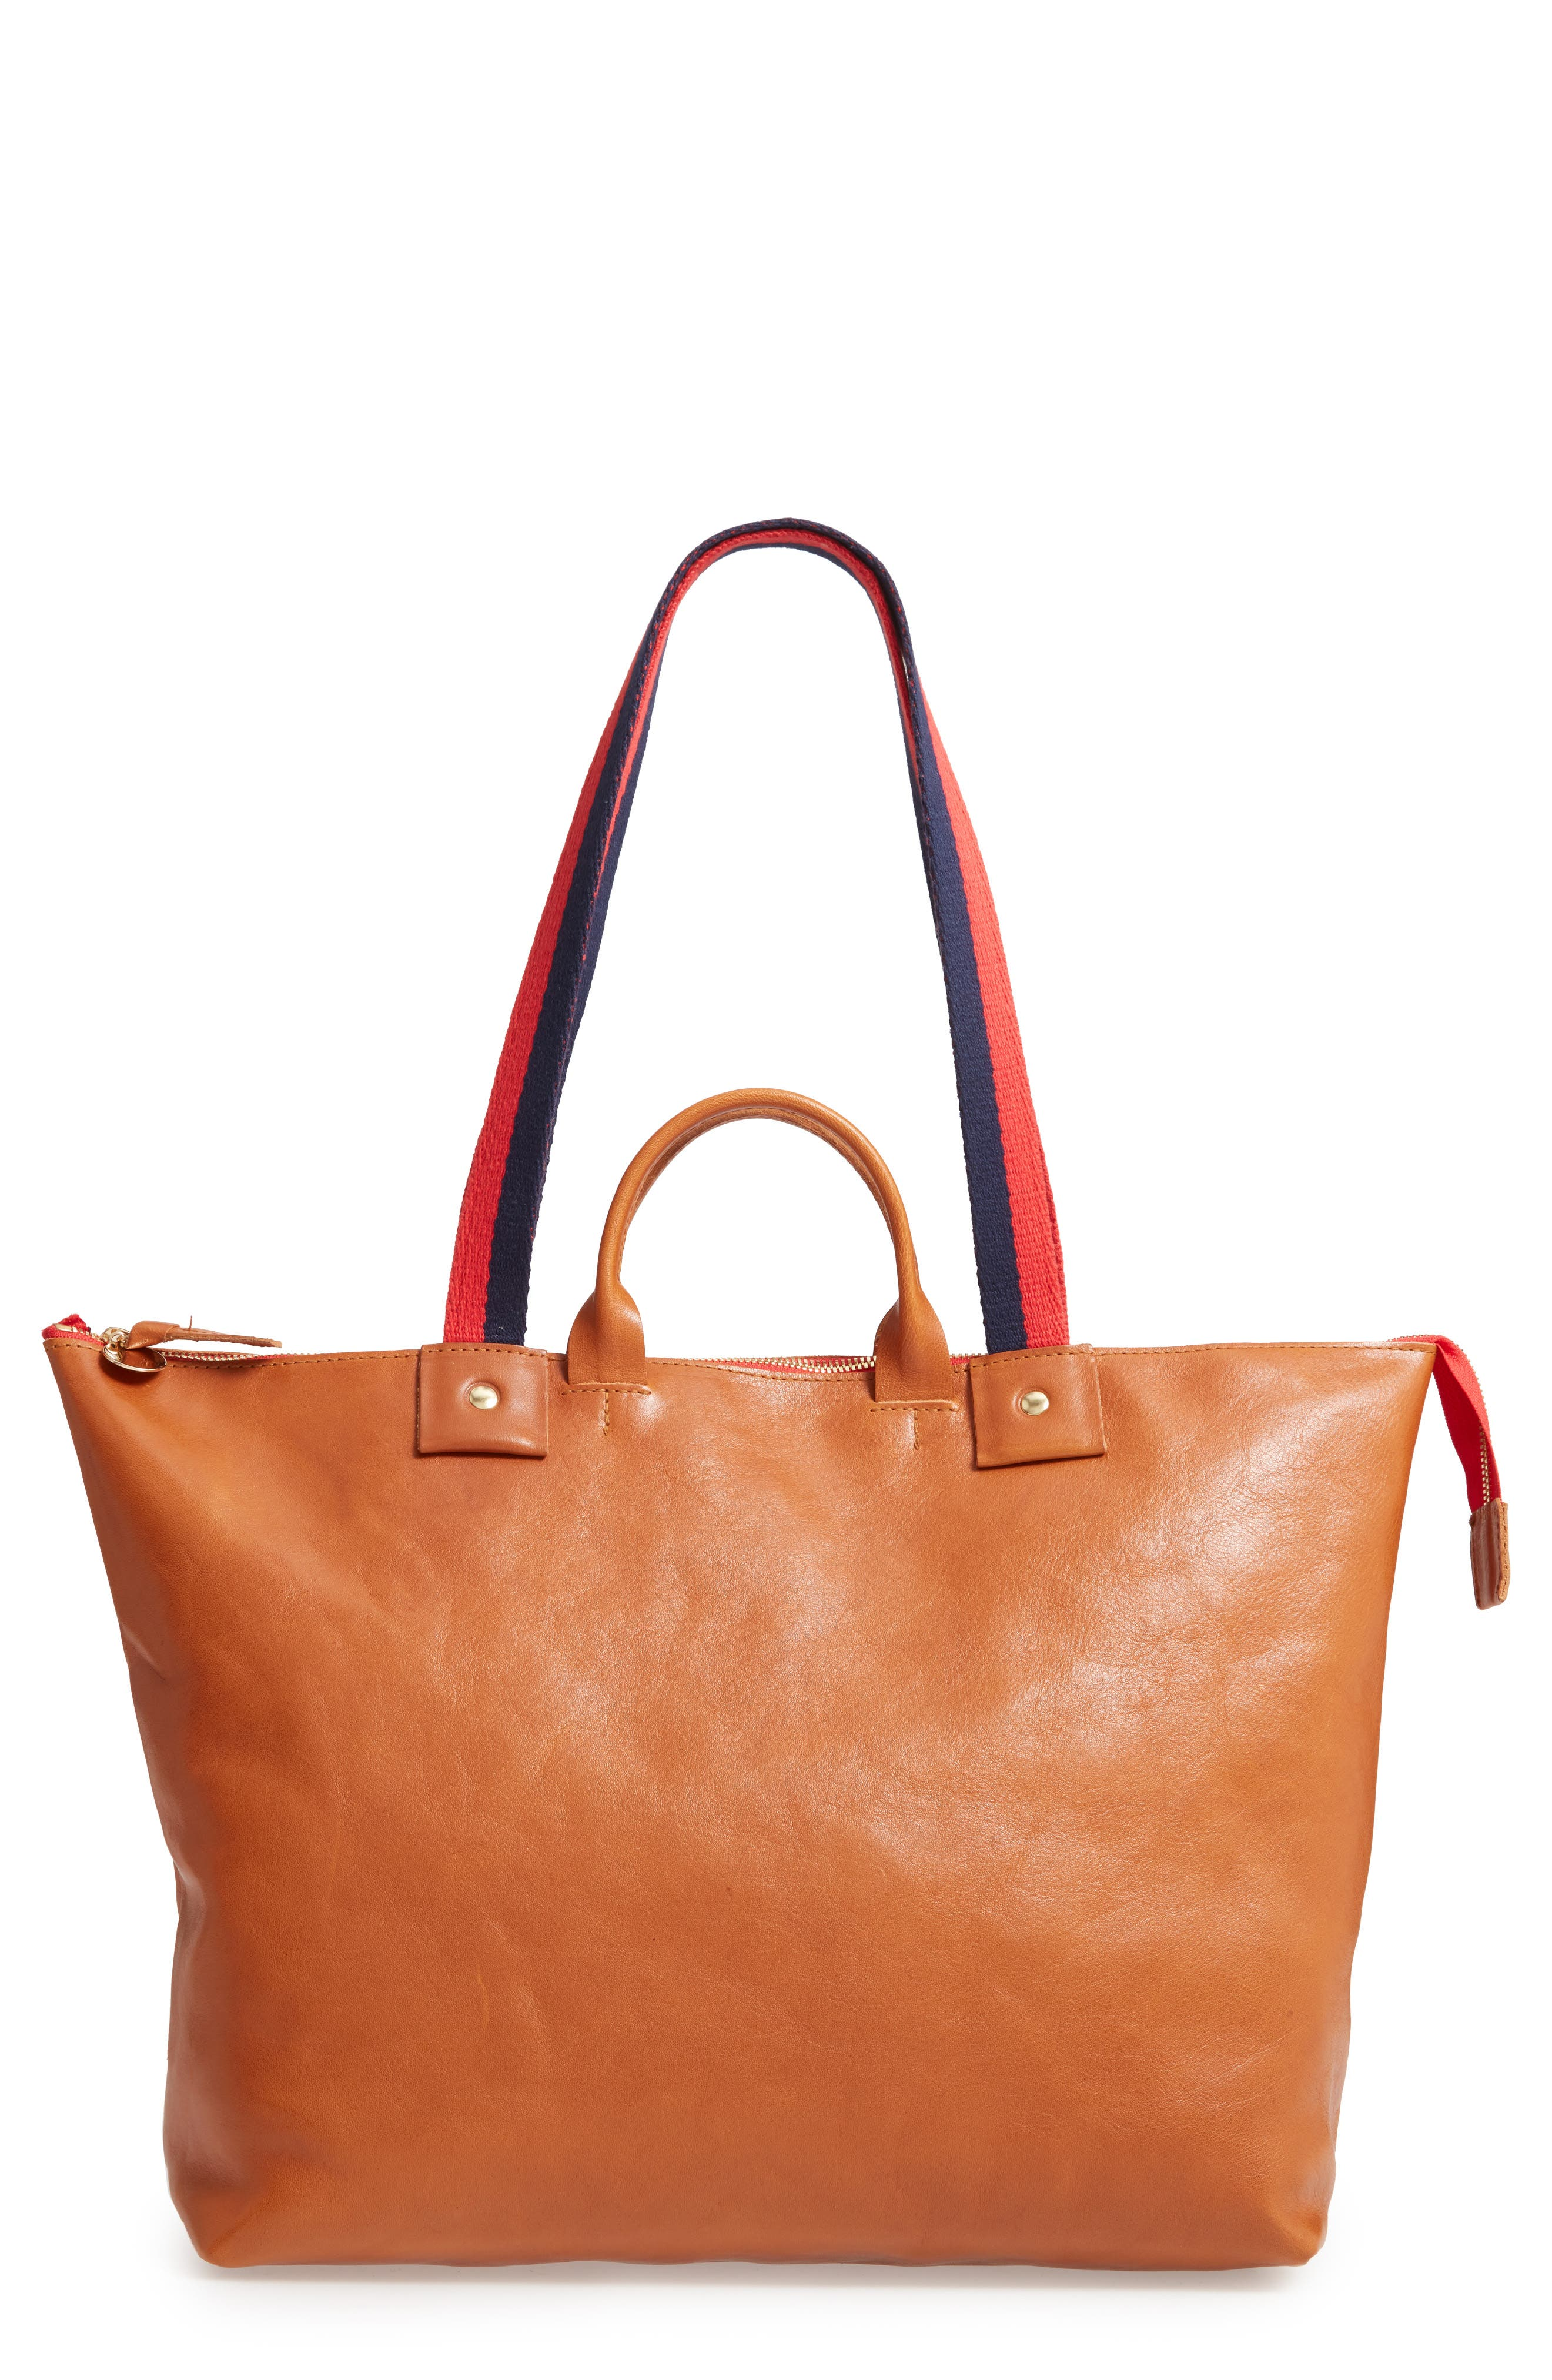 CLARE V., Le Zip Leather Tote, Main thumbnail 1, color, MIEL RUSTIC